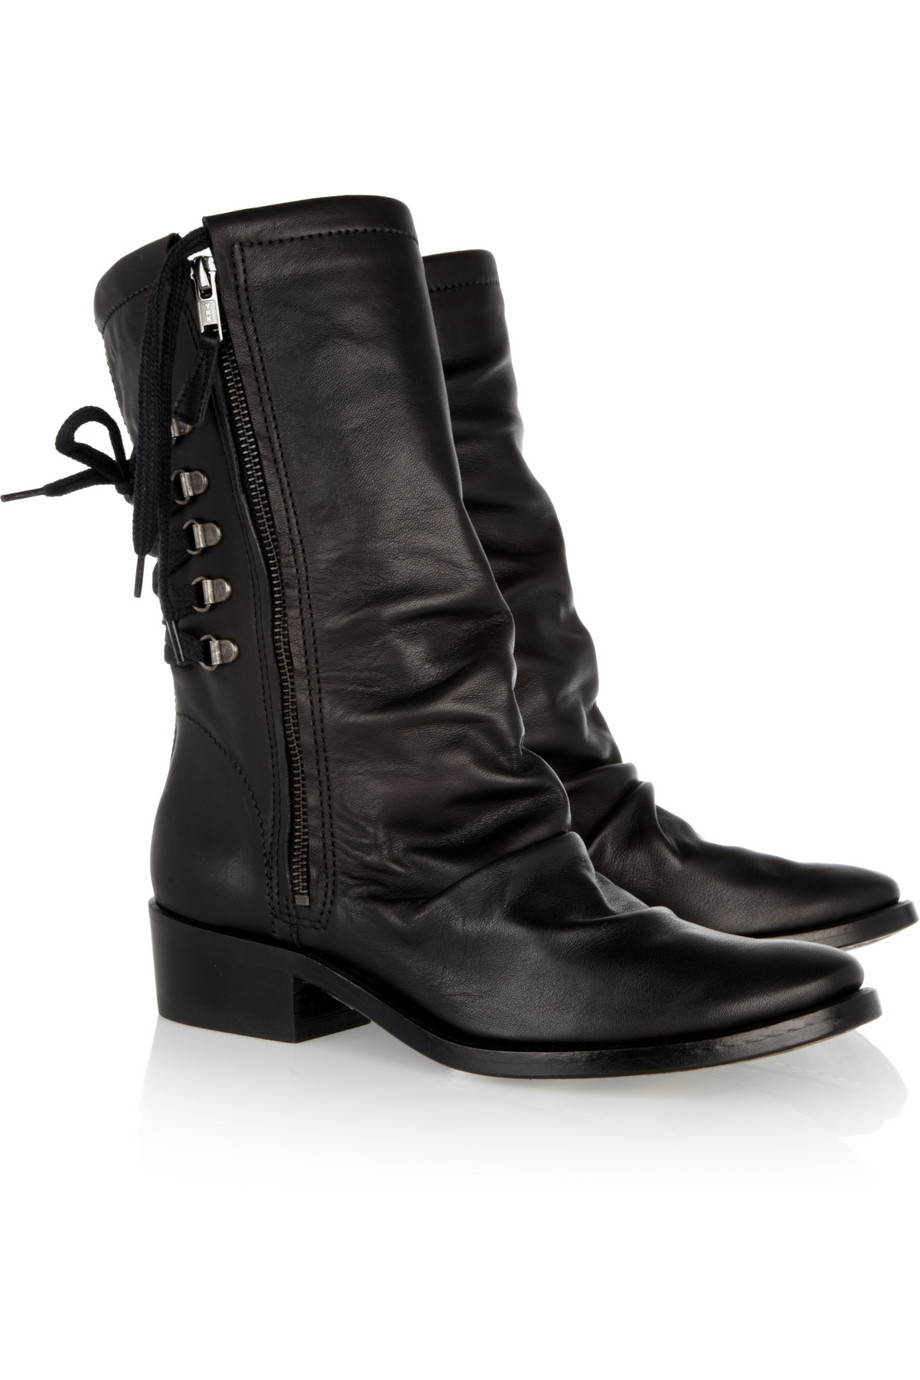 georgina goodman billy leather calf boots in black lyst